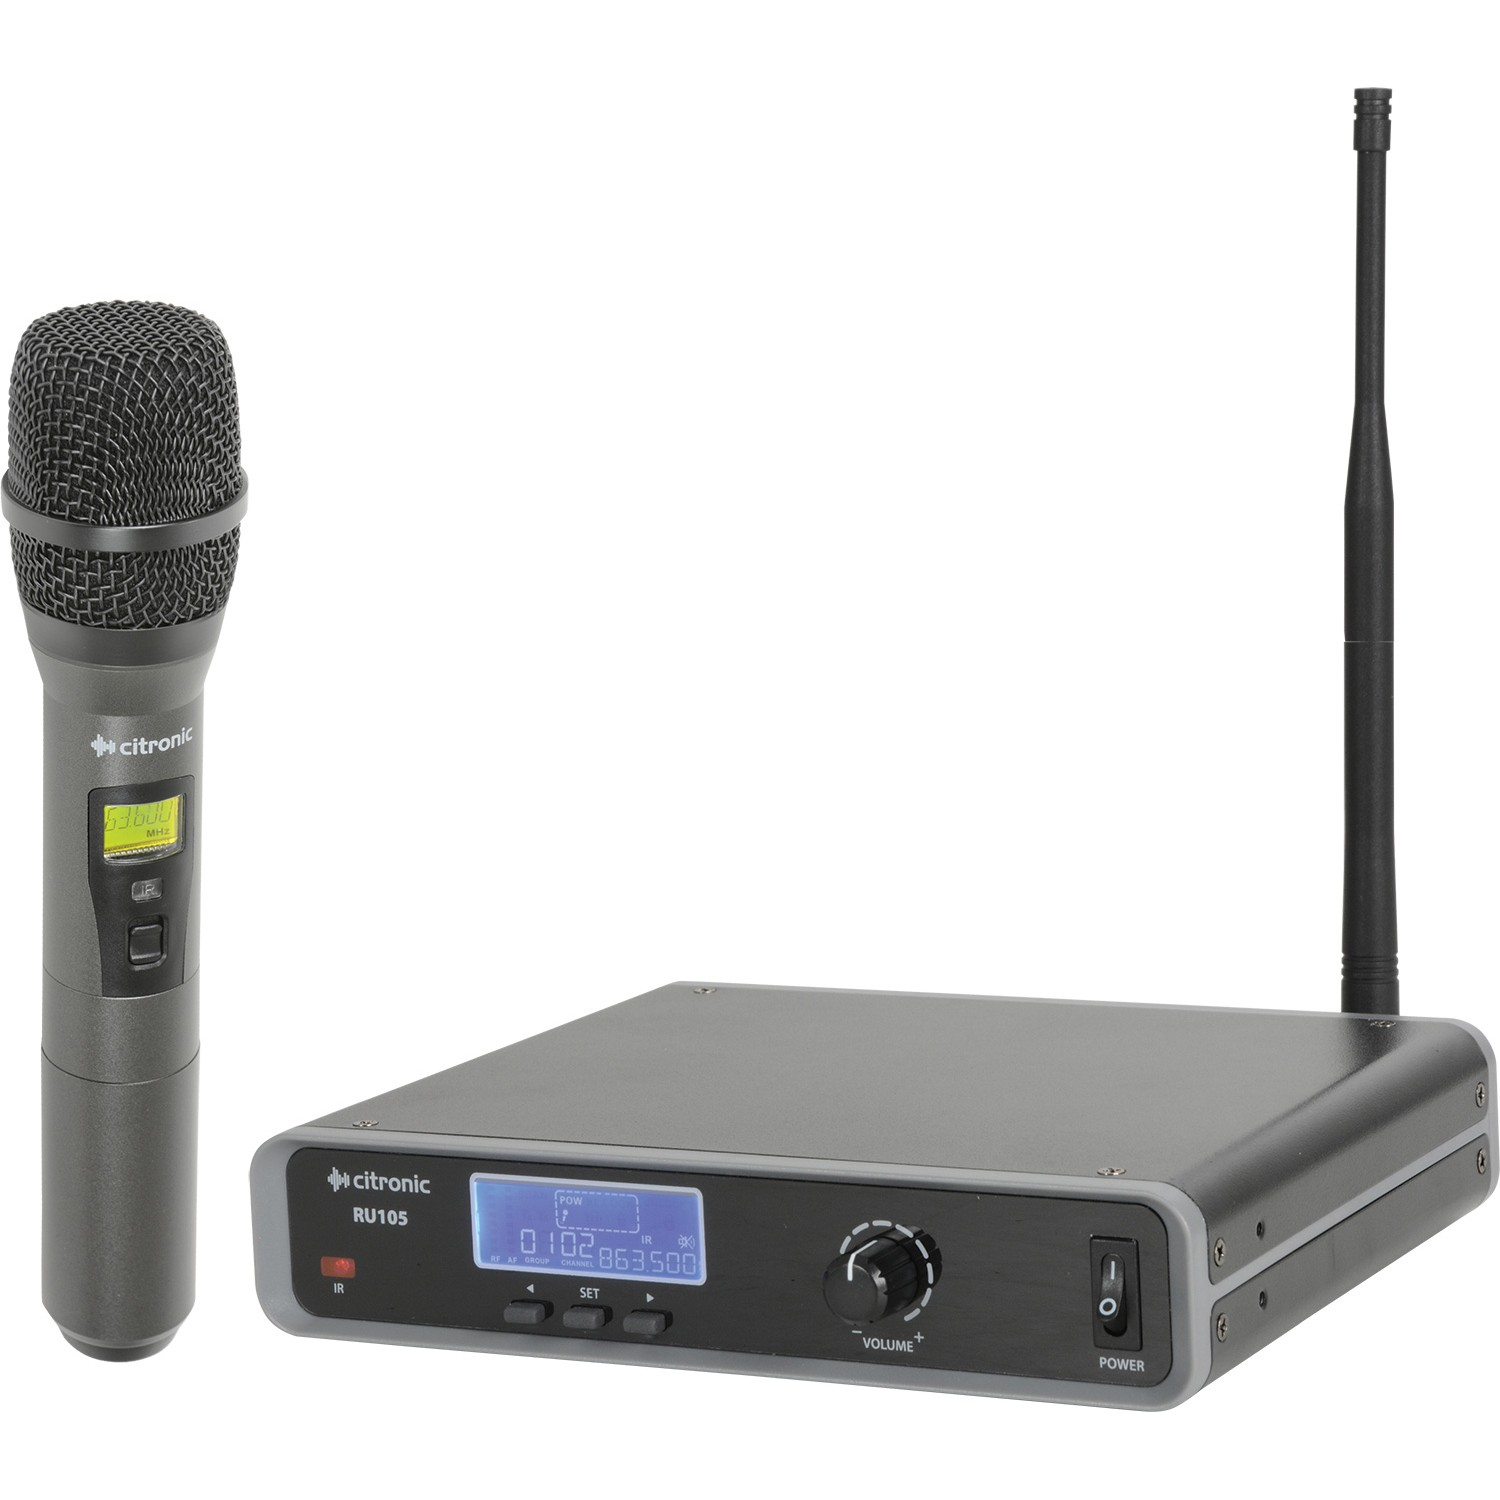 RU105-H license free Ch. 70 wireless microphone system